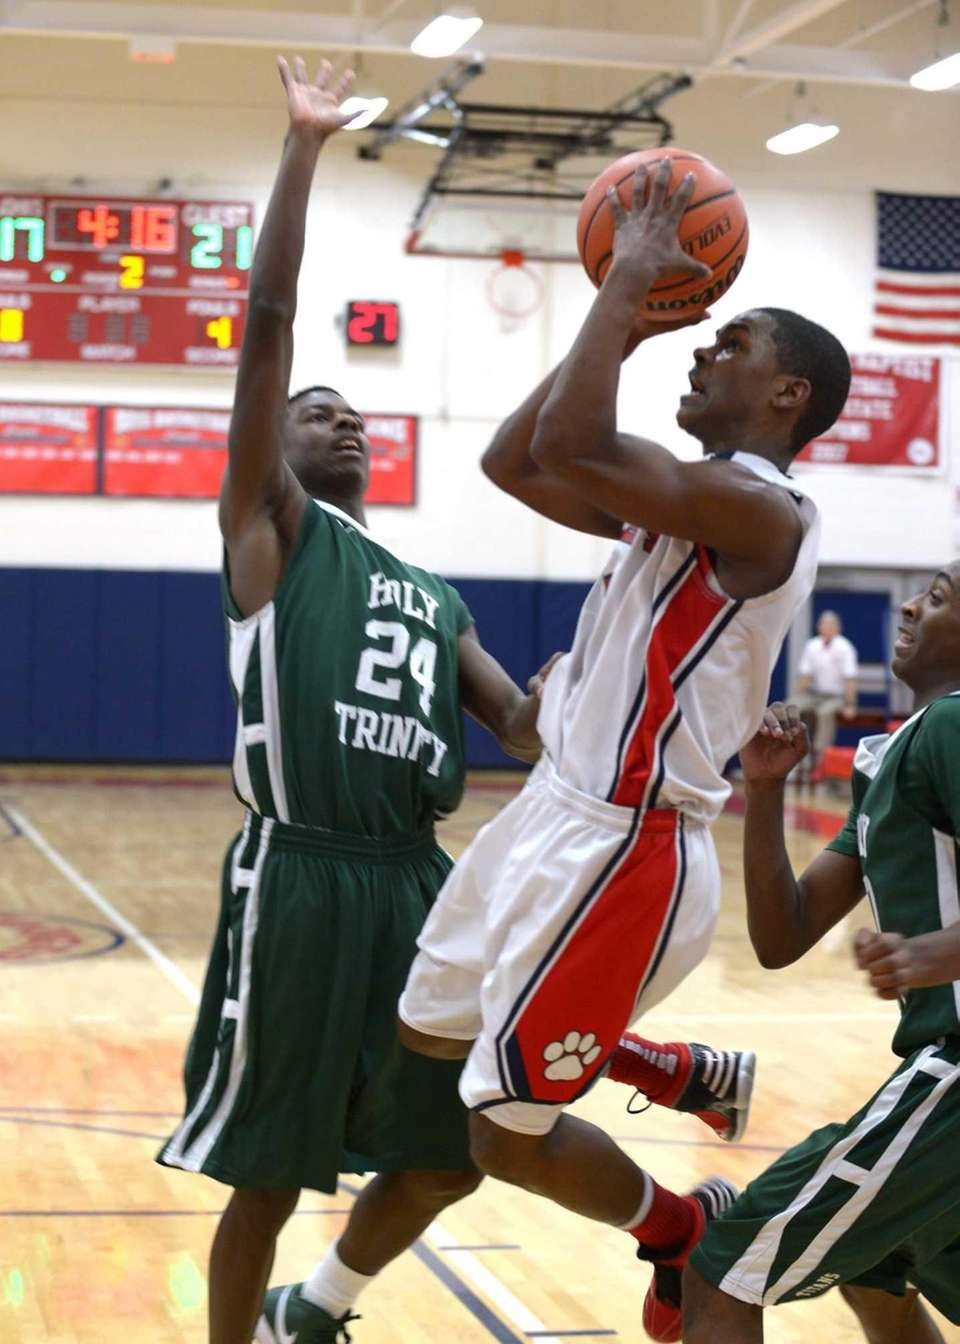 St. John the Baptist's Travon Ginyard drives for